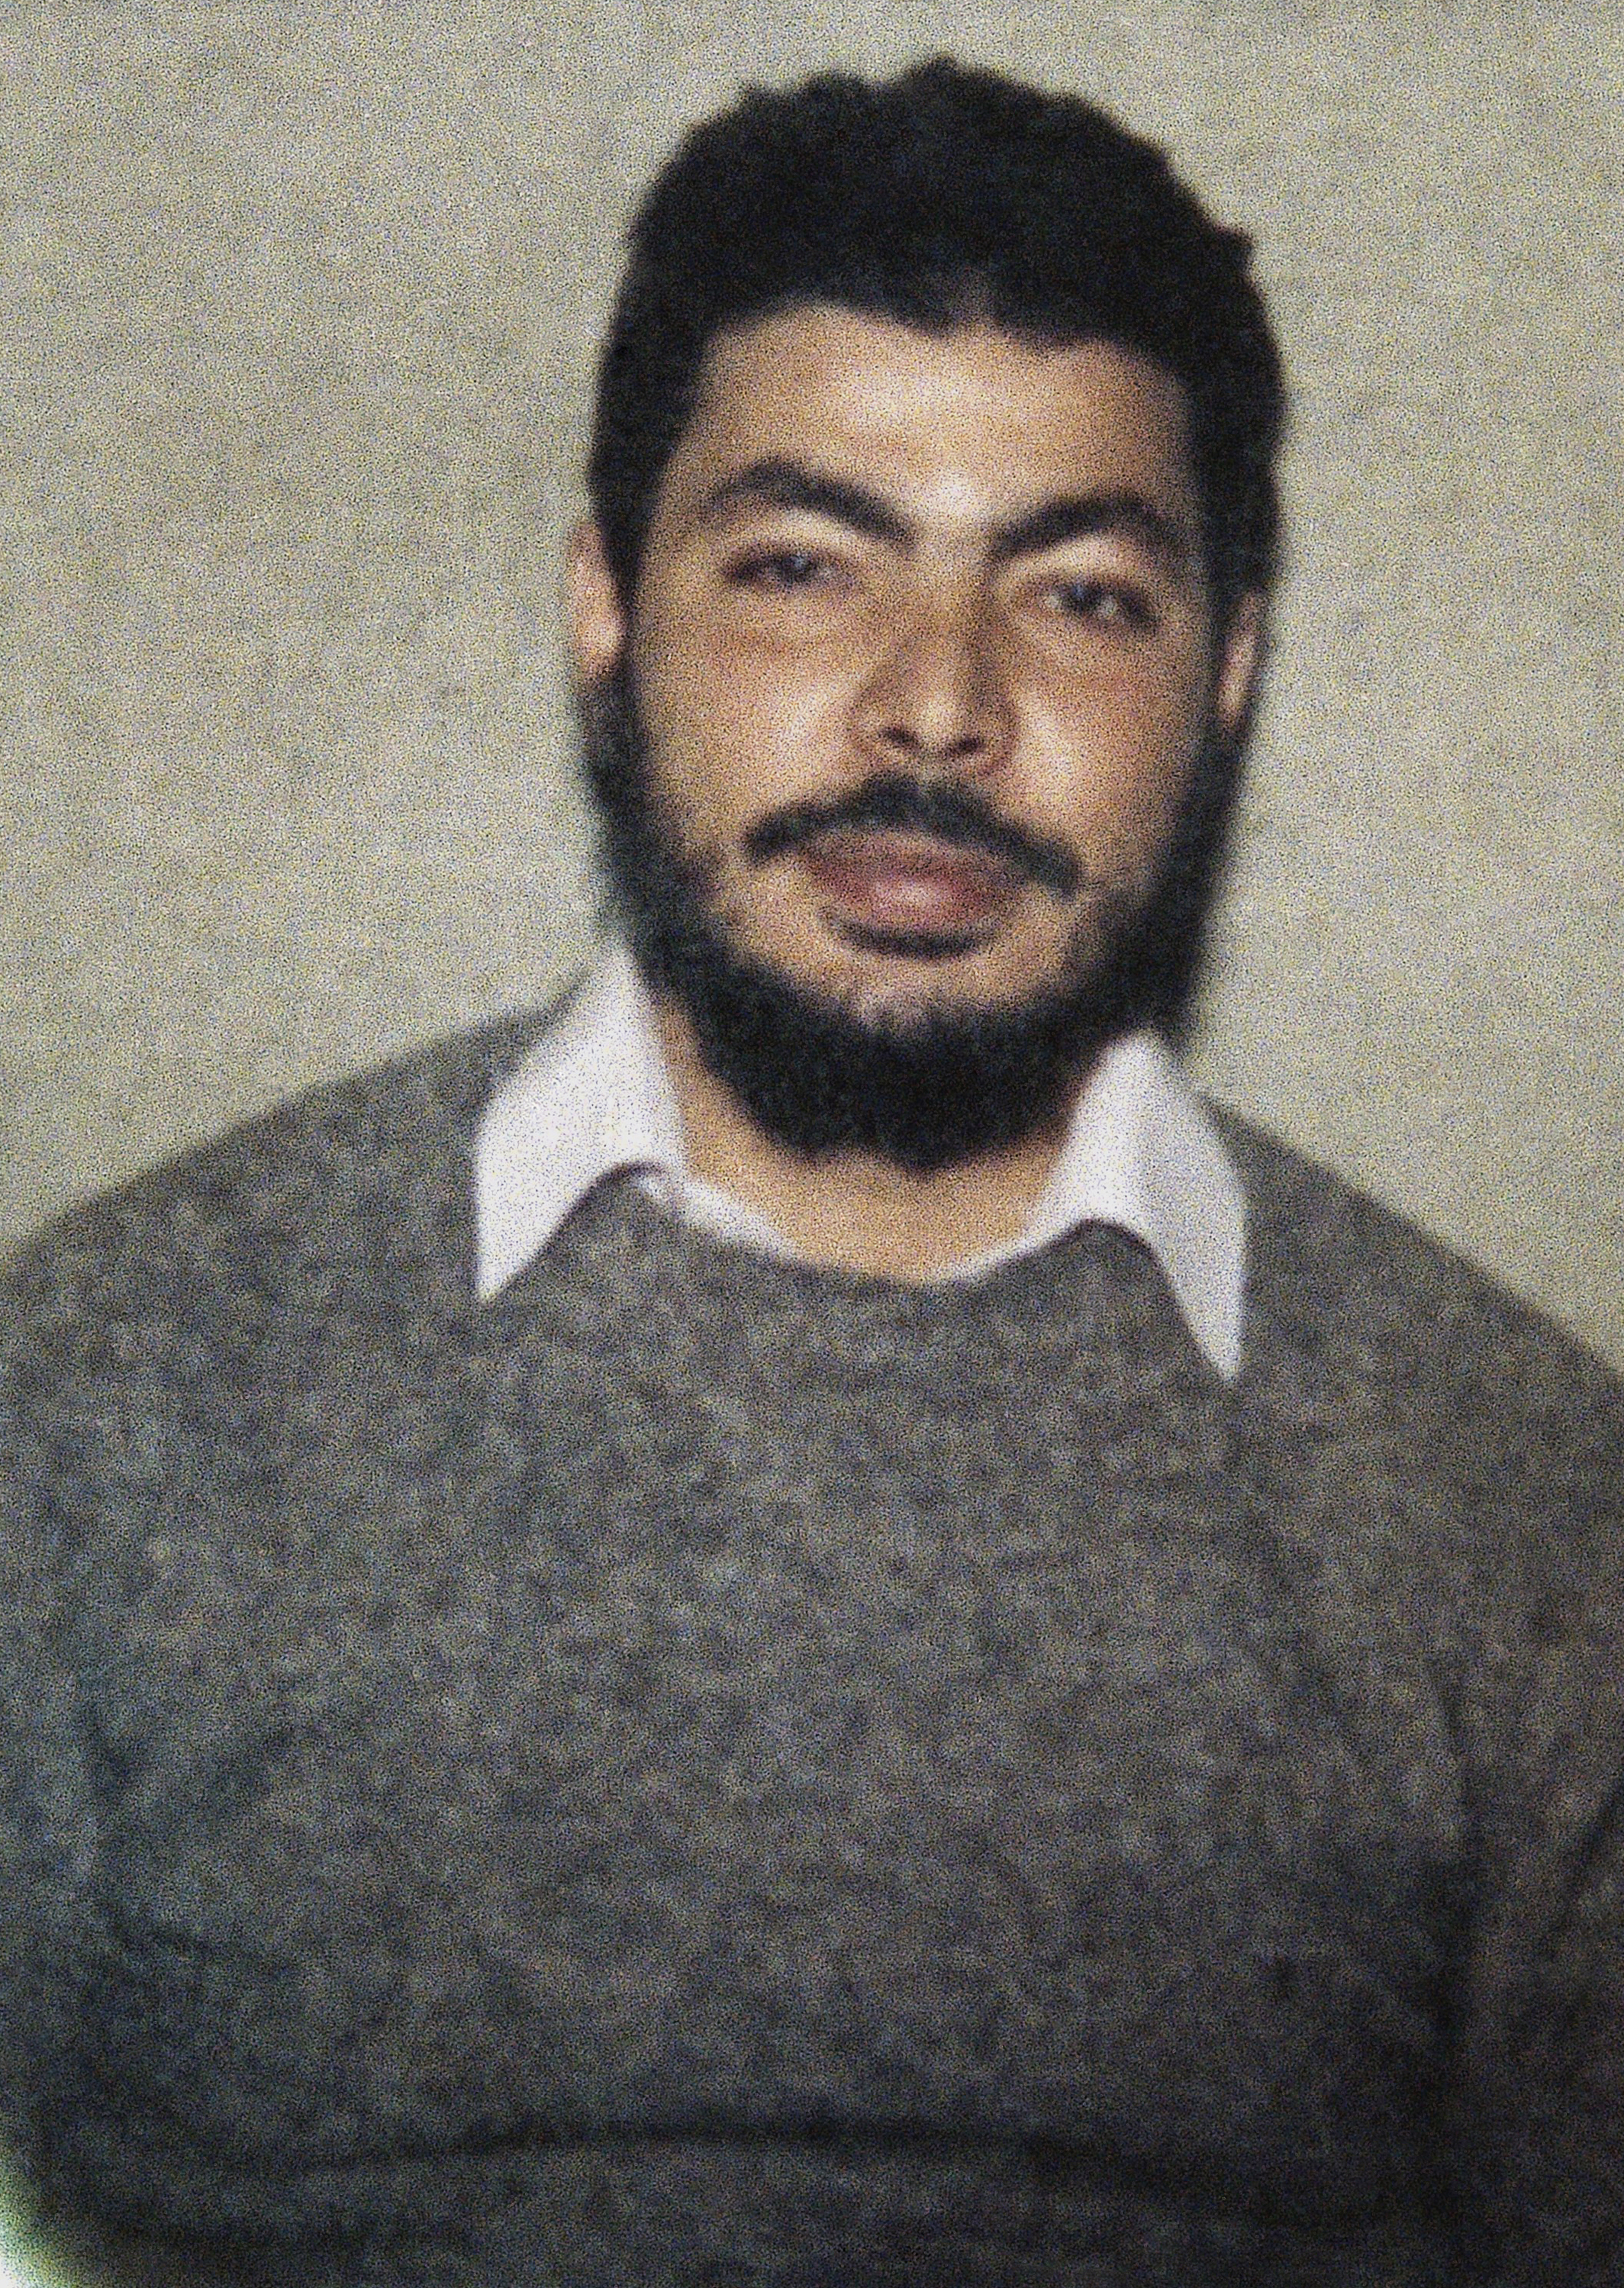 El-Sayyid A. Nosair, alleged assassin of Rabbi Meir Kahane. Nosair was charged with murder.